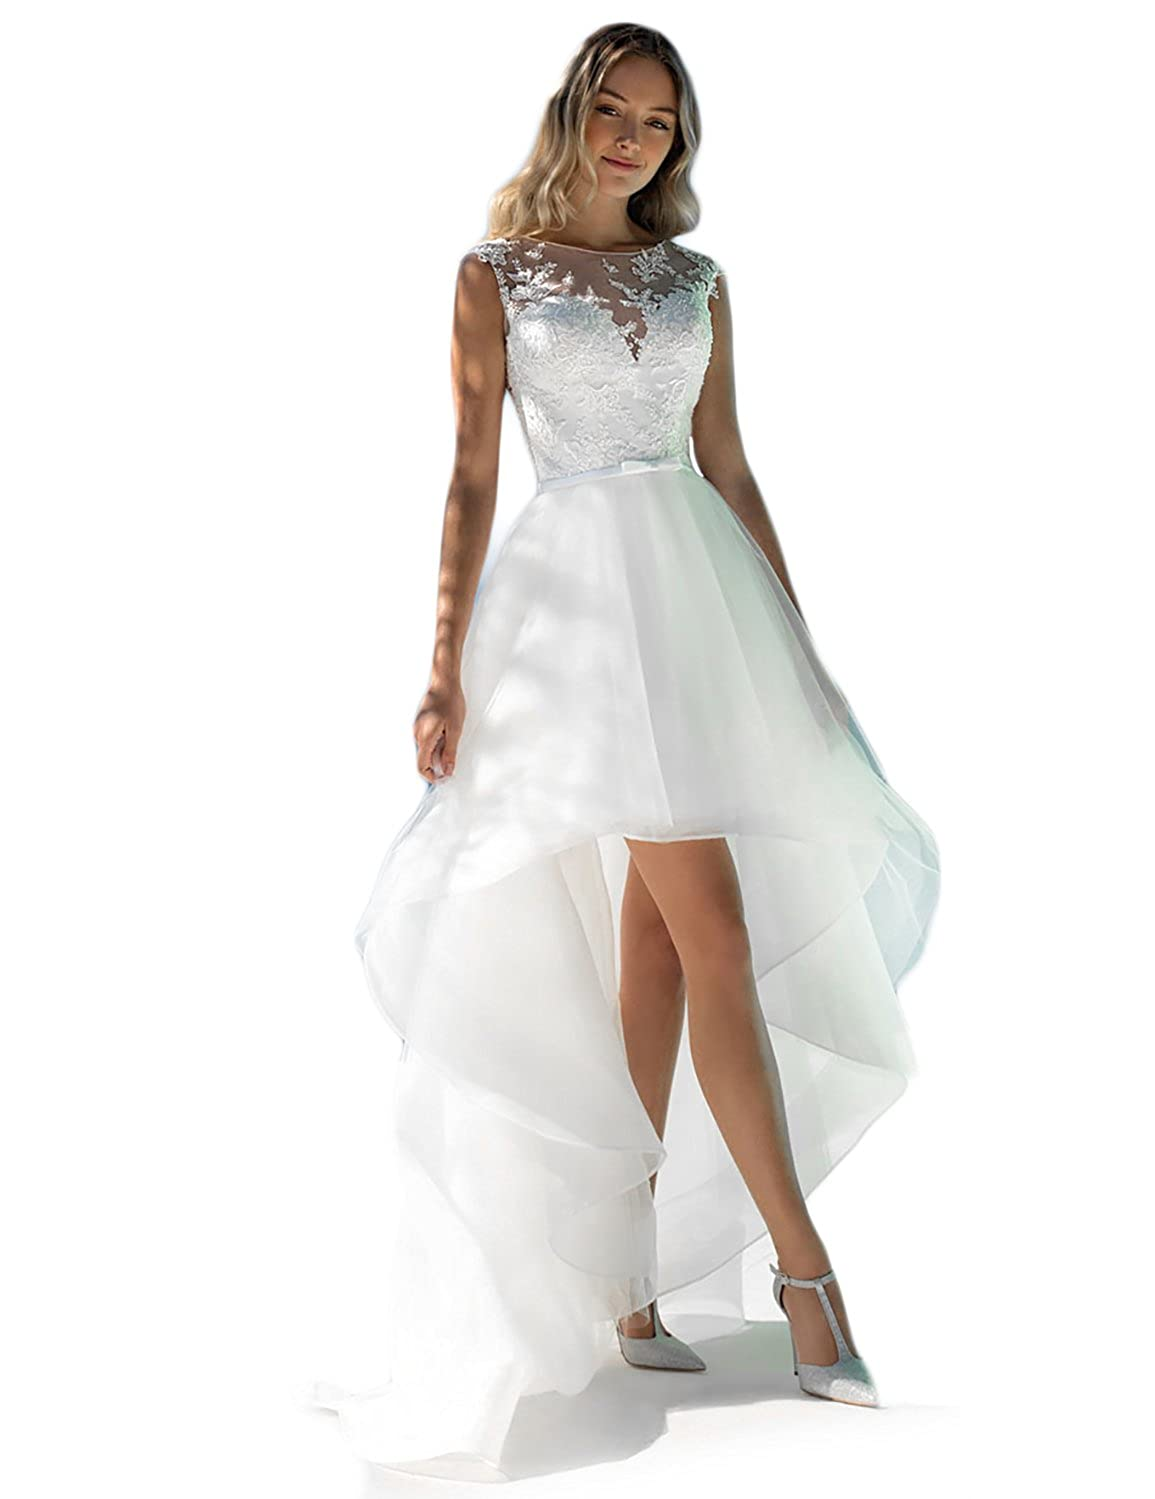 Asoiree Lace Beaded High Low Wedding Dresses See Through Back At